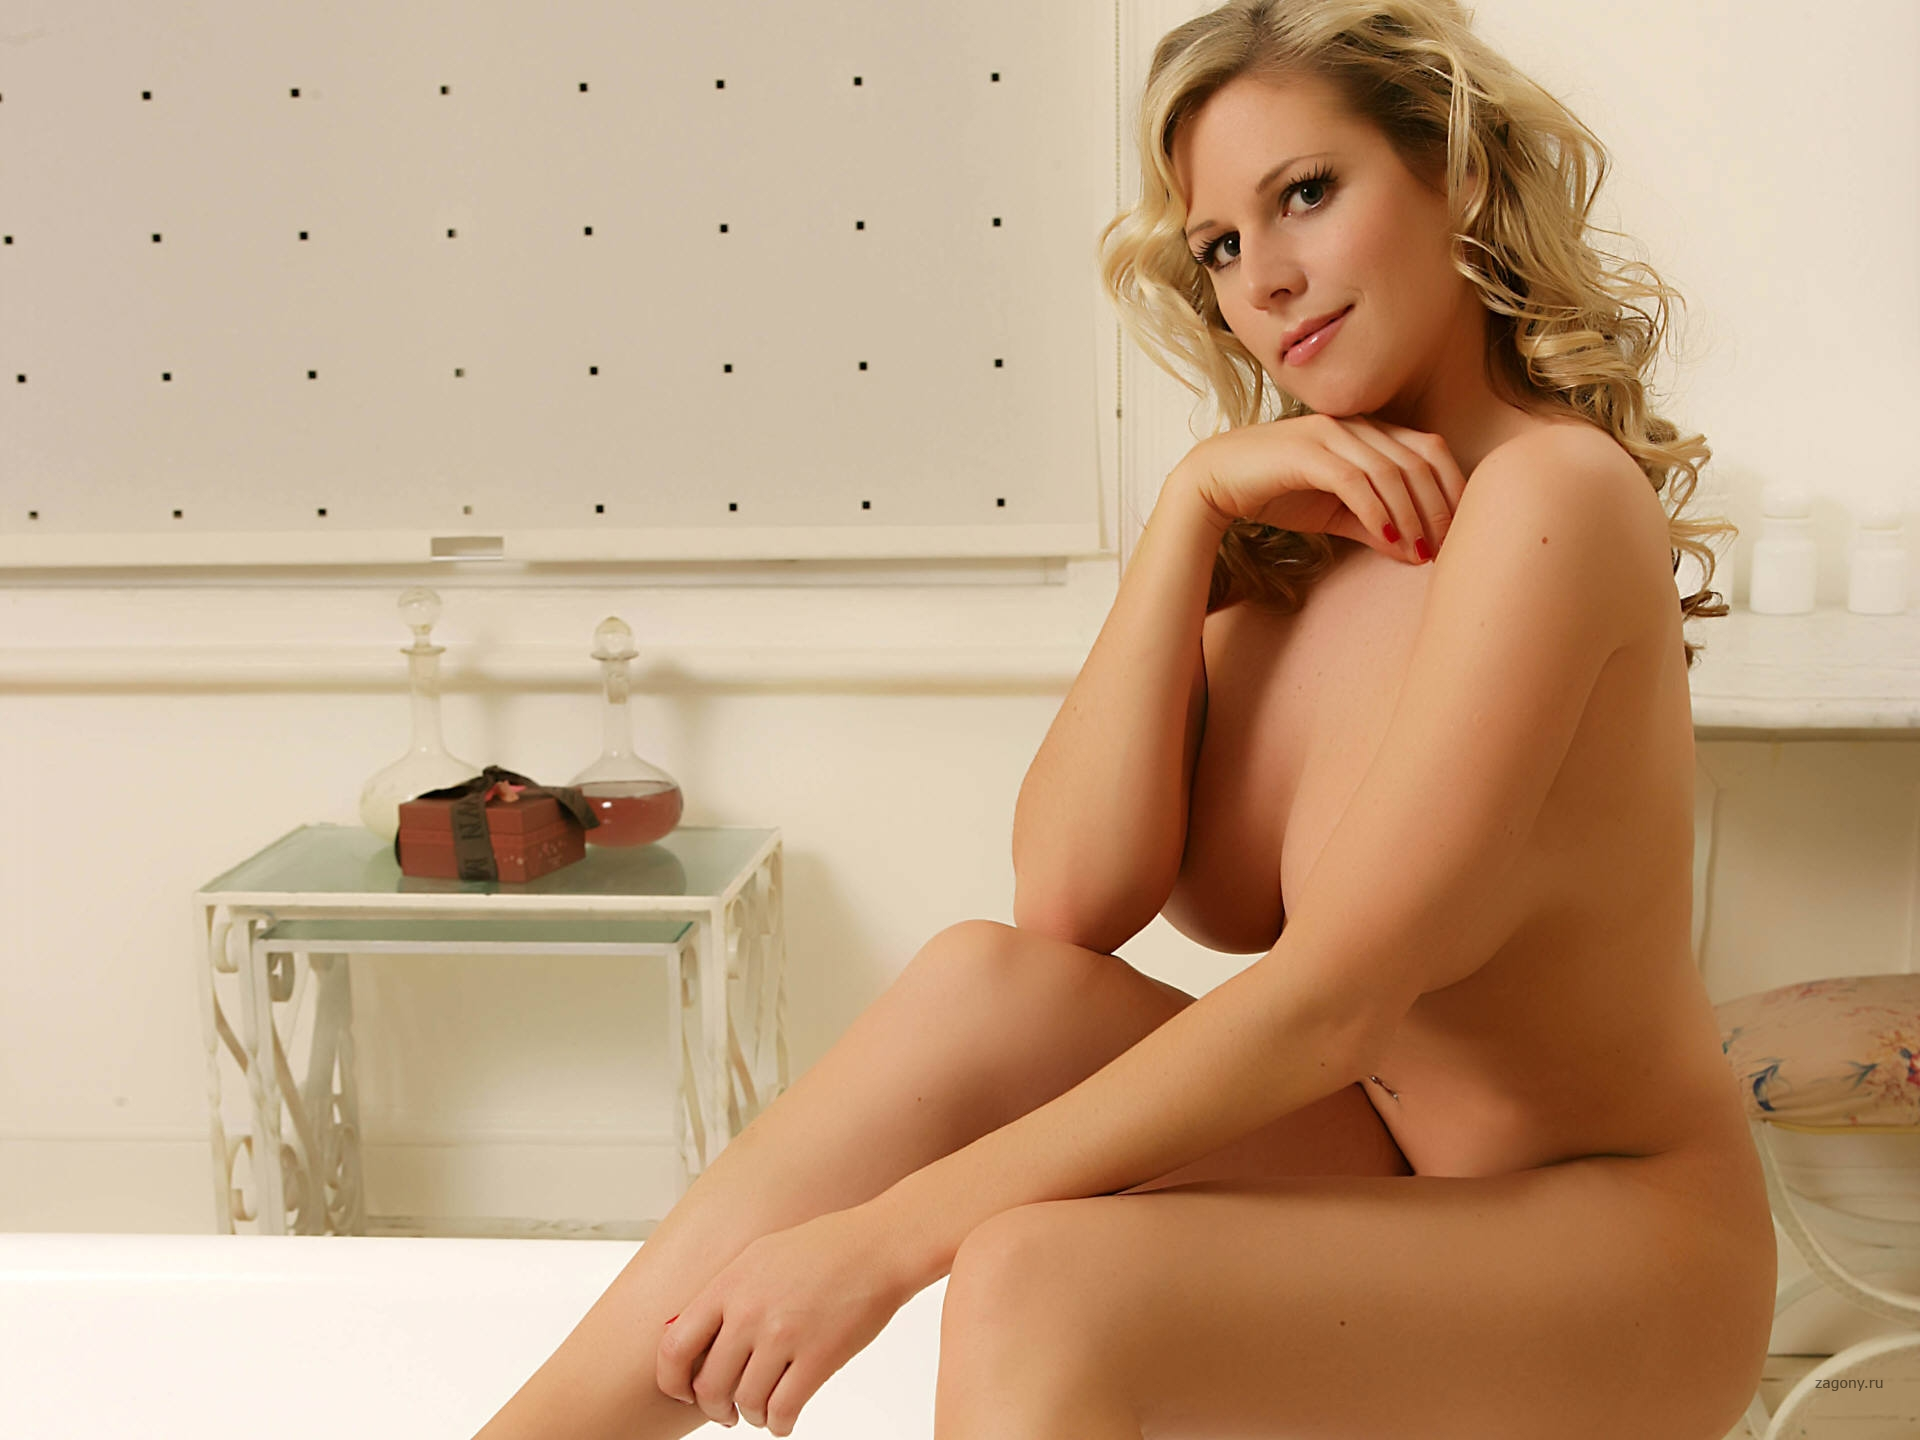 Pictures of abi titmuss having sex #1